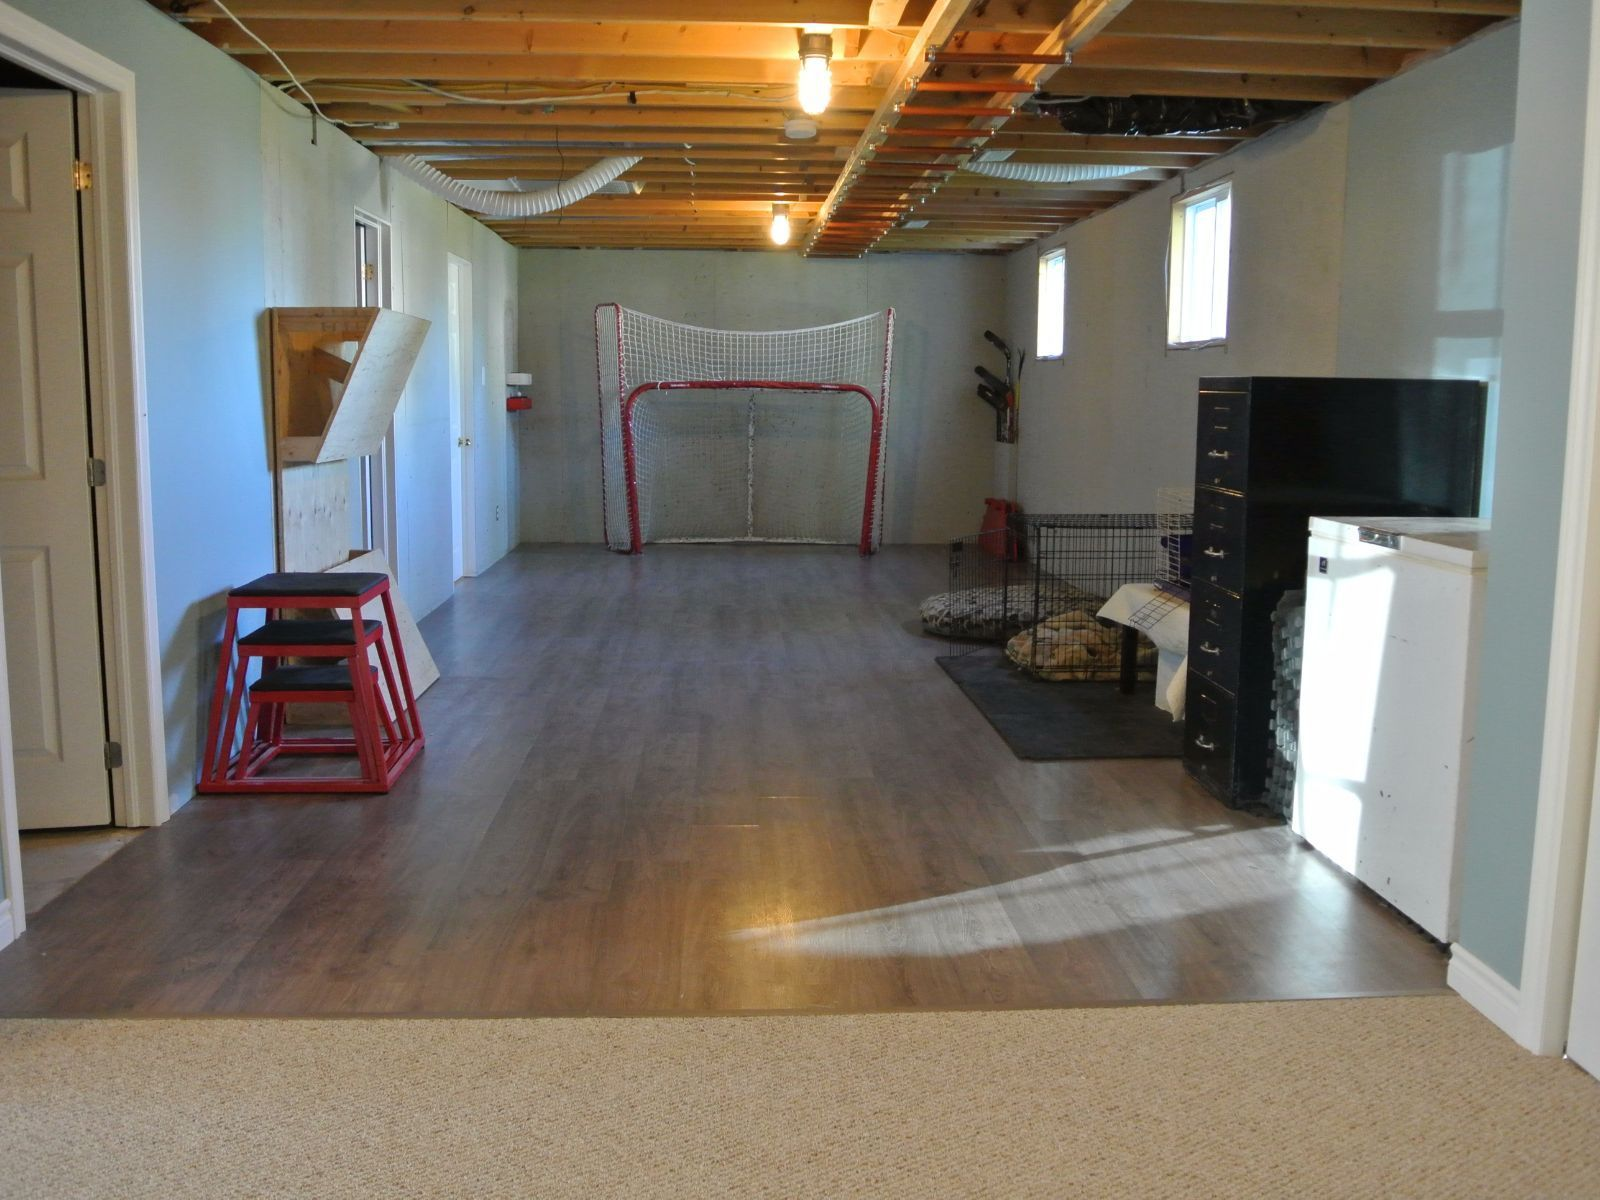 Raised Bungalow For Sale In Victoria Harbour, 18 Bourgeois. Shoji Screens And Room Dividers. Cozy Room Design. How To Cool A Dorm Room Without Air Conditioning. Small Apartment Room Dividers. Drawing Room Floor Design. Game Room Gift Ideas. A Kids Room. Designer Rooms For Girls